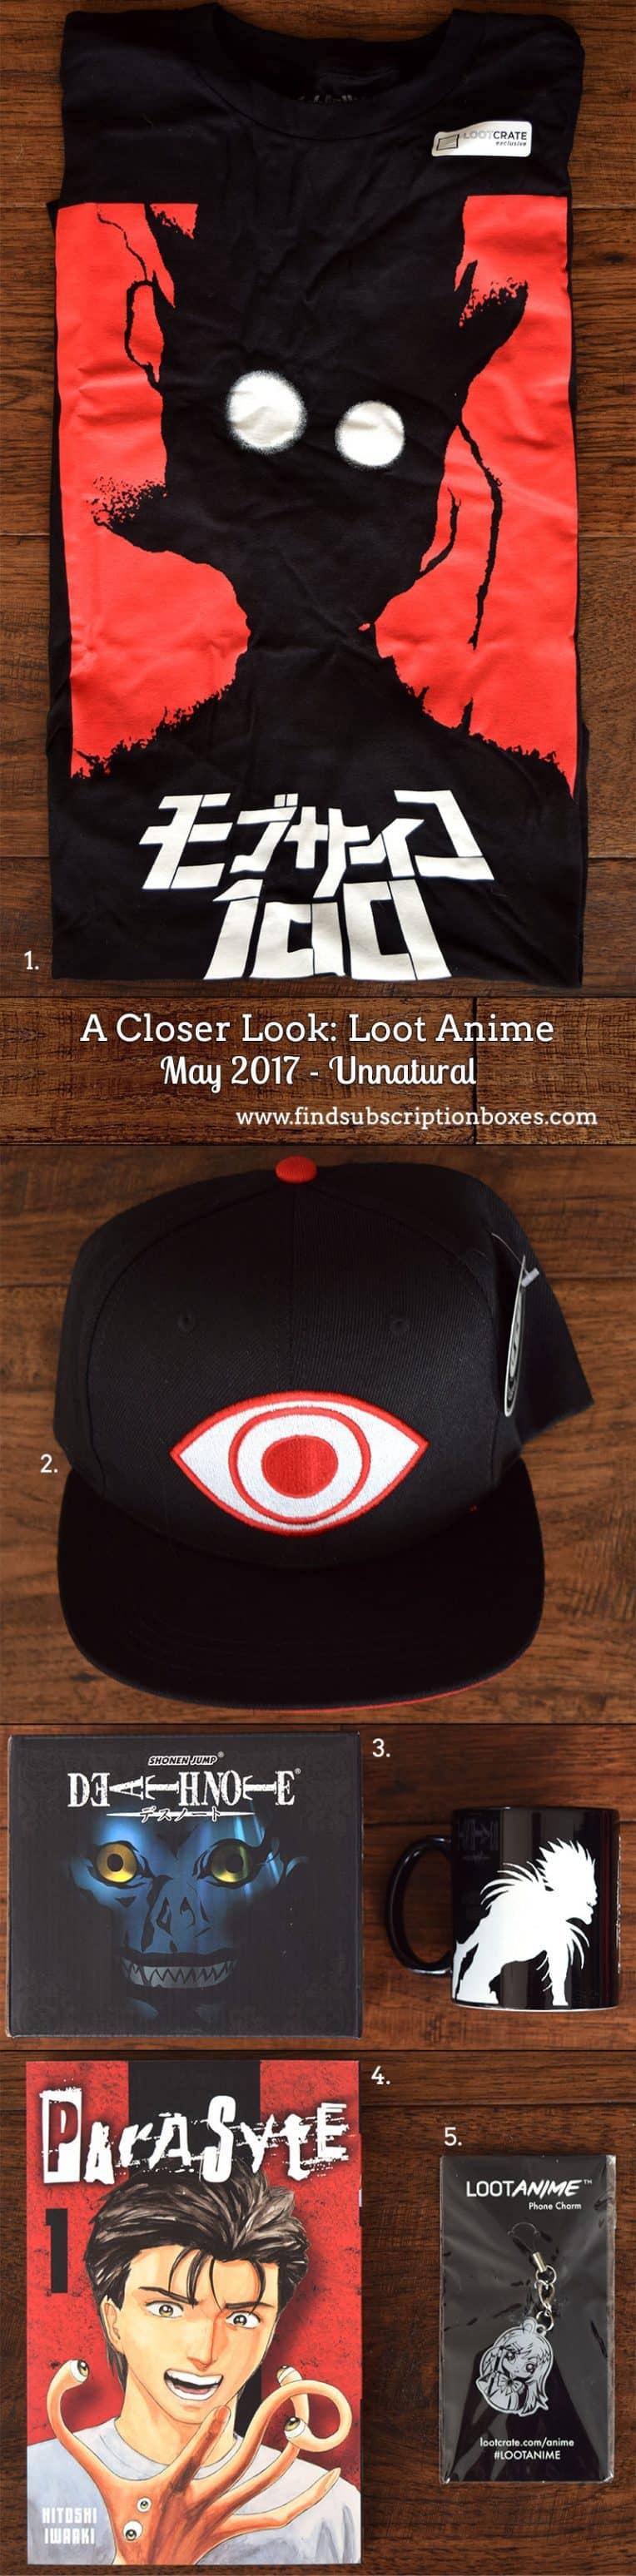 Inside the May 2017 Loot Anime Review - Unnatural Crate - Inside the Box